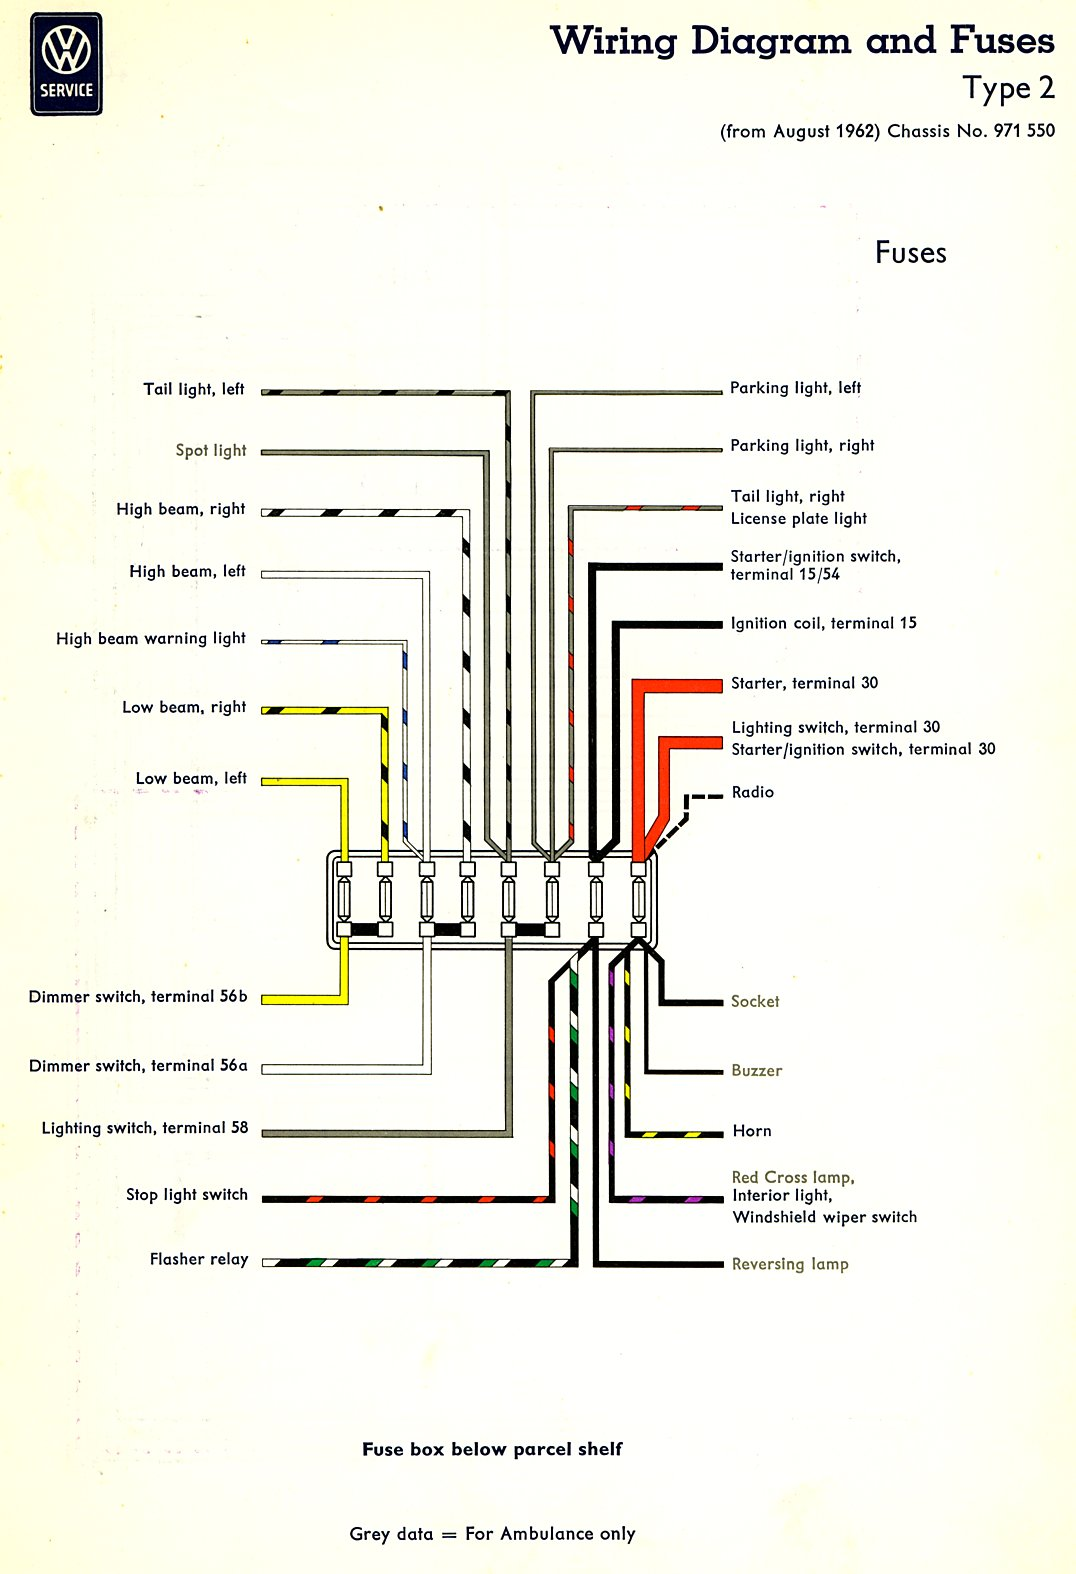 1984 Toyota Truck Fuse Box Diagram Wiring Rear Small Lights In Help Please The Split